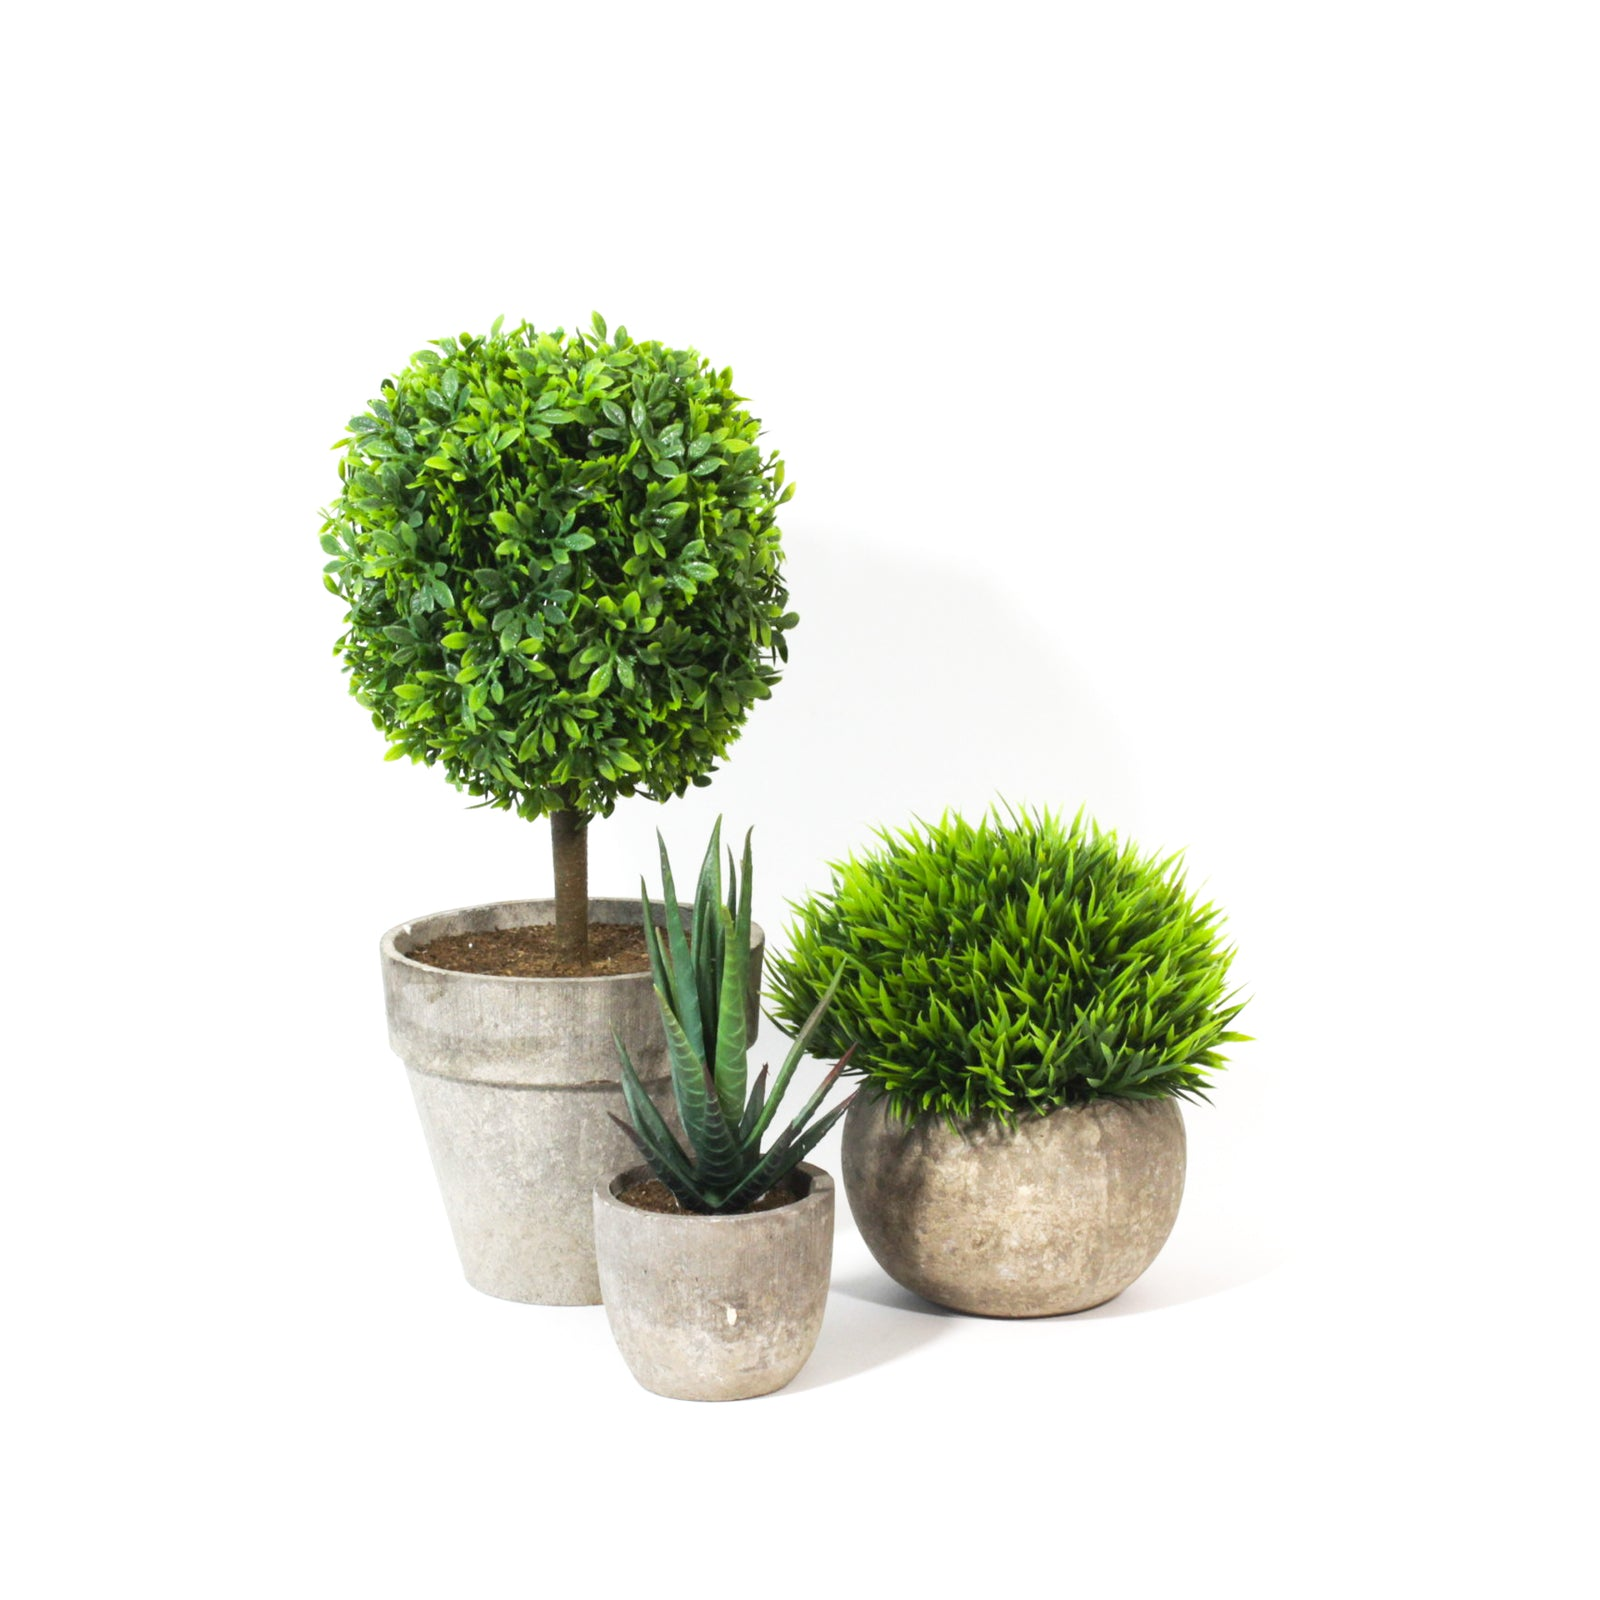 Mini Potted Artificial Plant, fats plants